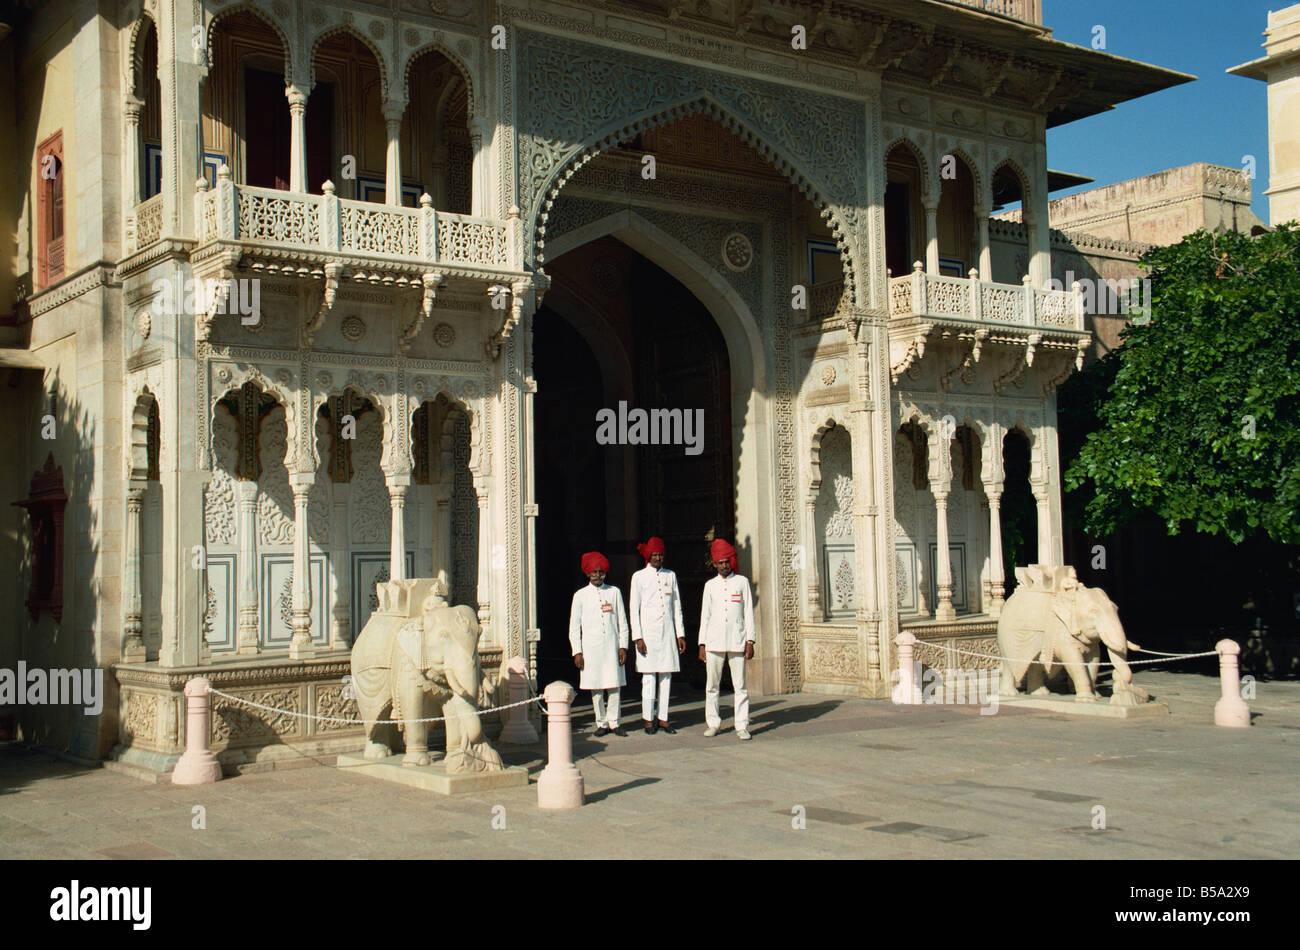 Gateway to the Inner courtyards, and guards, City Palace, Jaipur, Rajasthan state, India - Stock Image